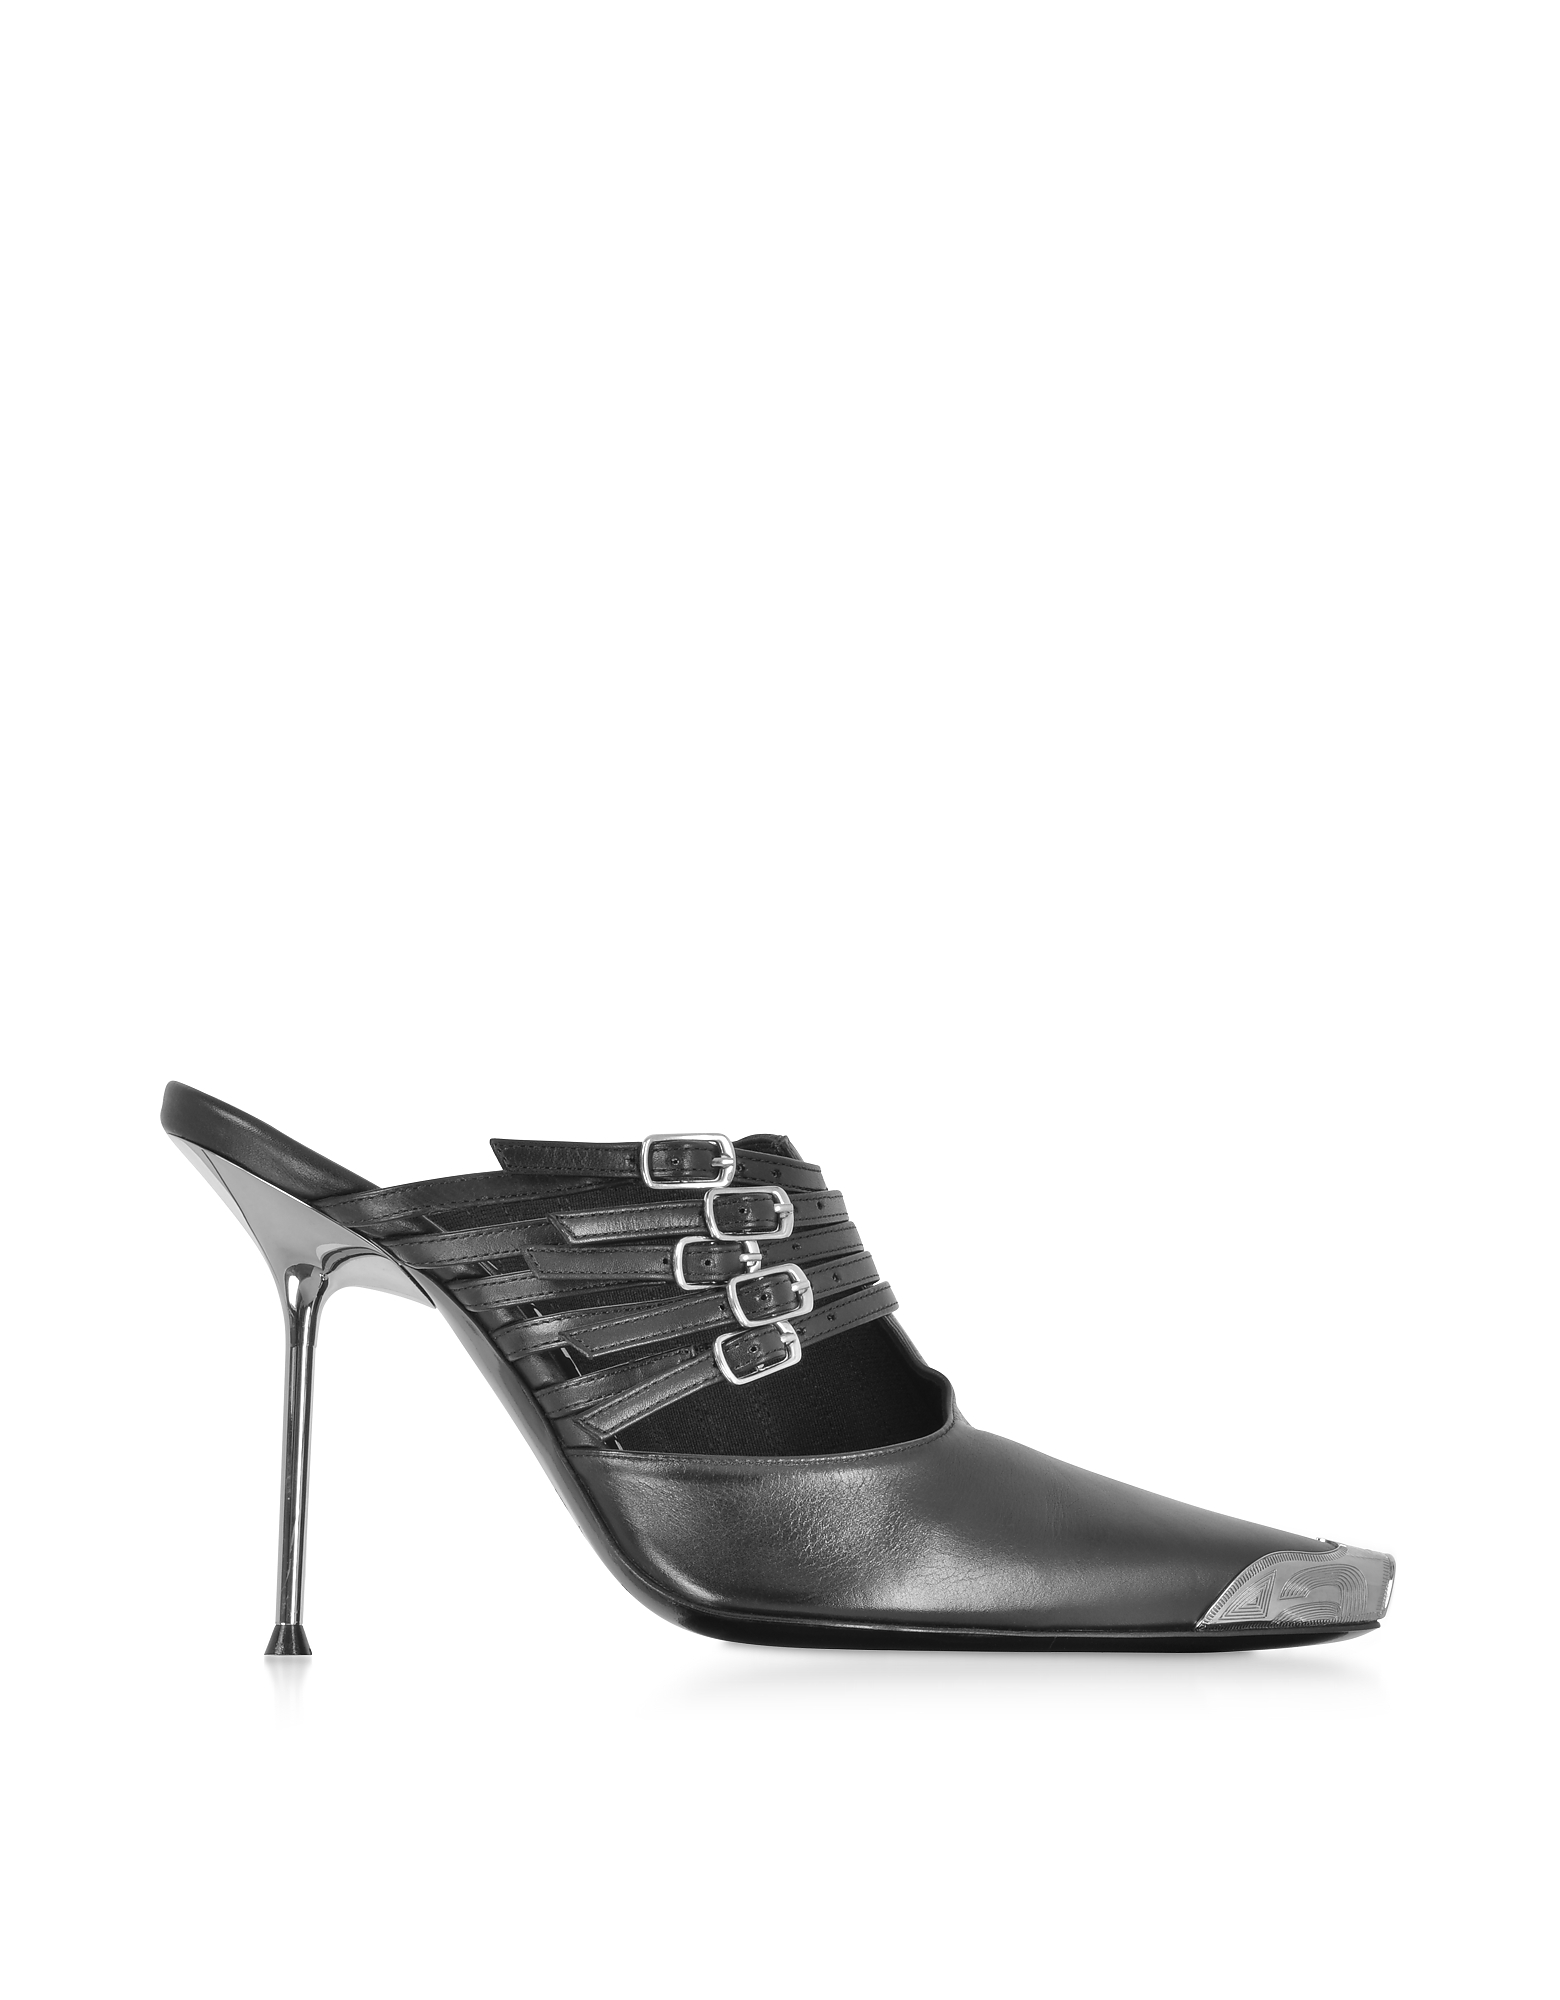 Alexander Wang Shoes, Minna Black Calf Leather High Heel Mules